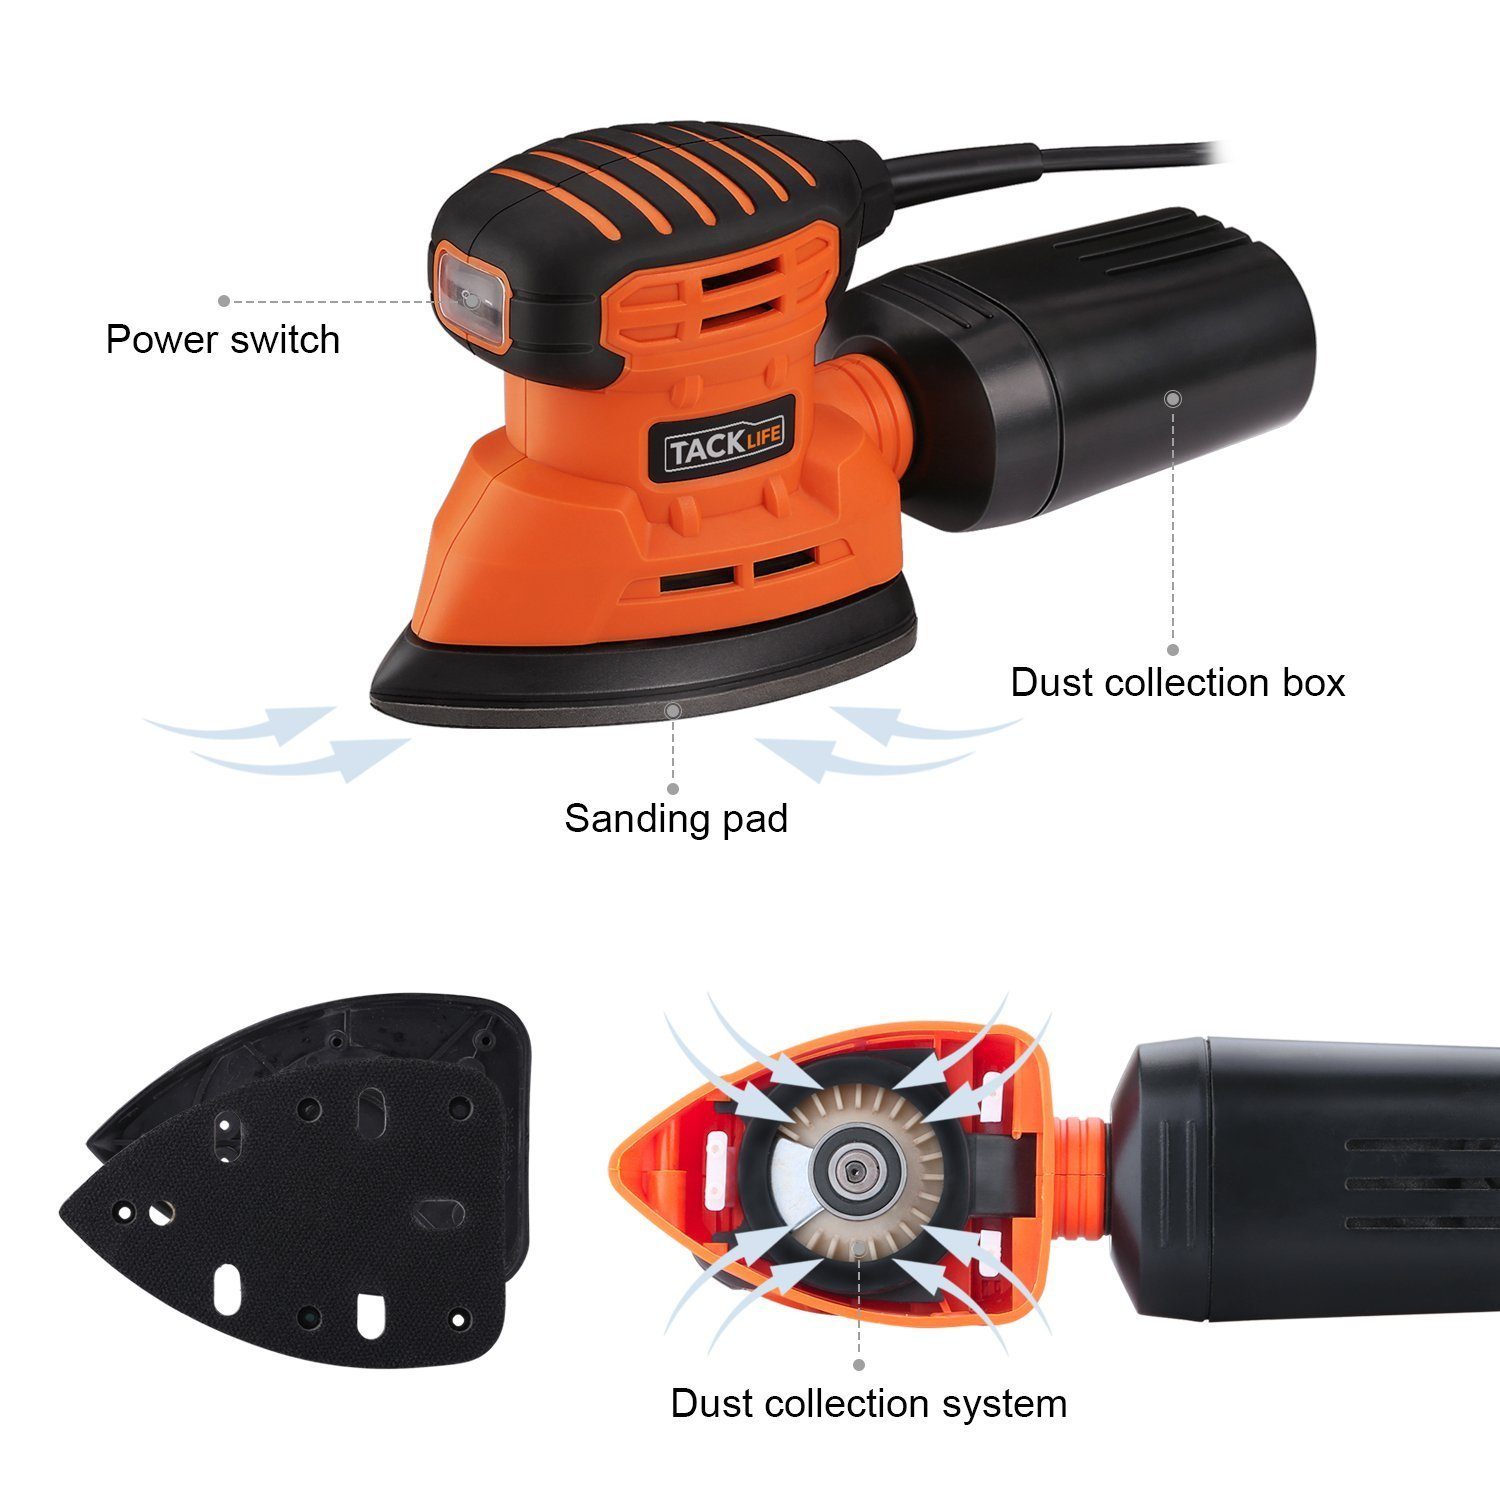 Mouse Detail Sander with 12Pcs Sanderpaper, 12000 OPM Sander with Dust Collection System For Tight Spaces Sanding in Home Decoration, DIY by TACKLIFE (Image #2)